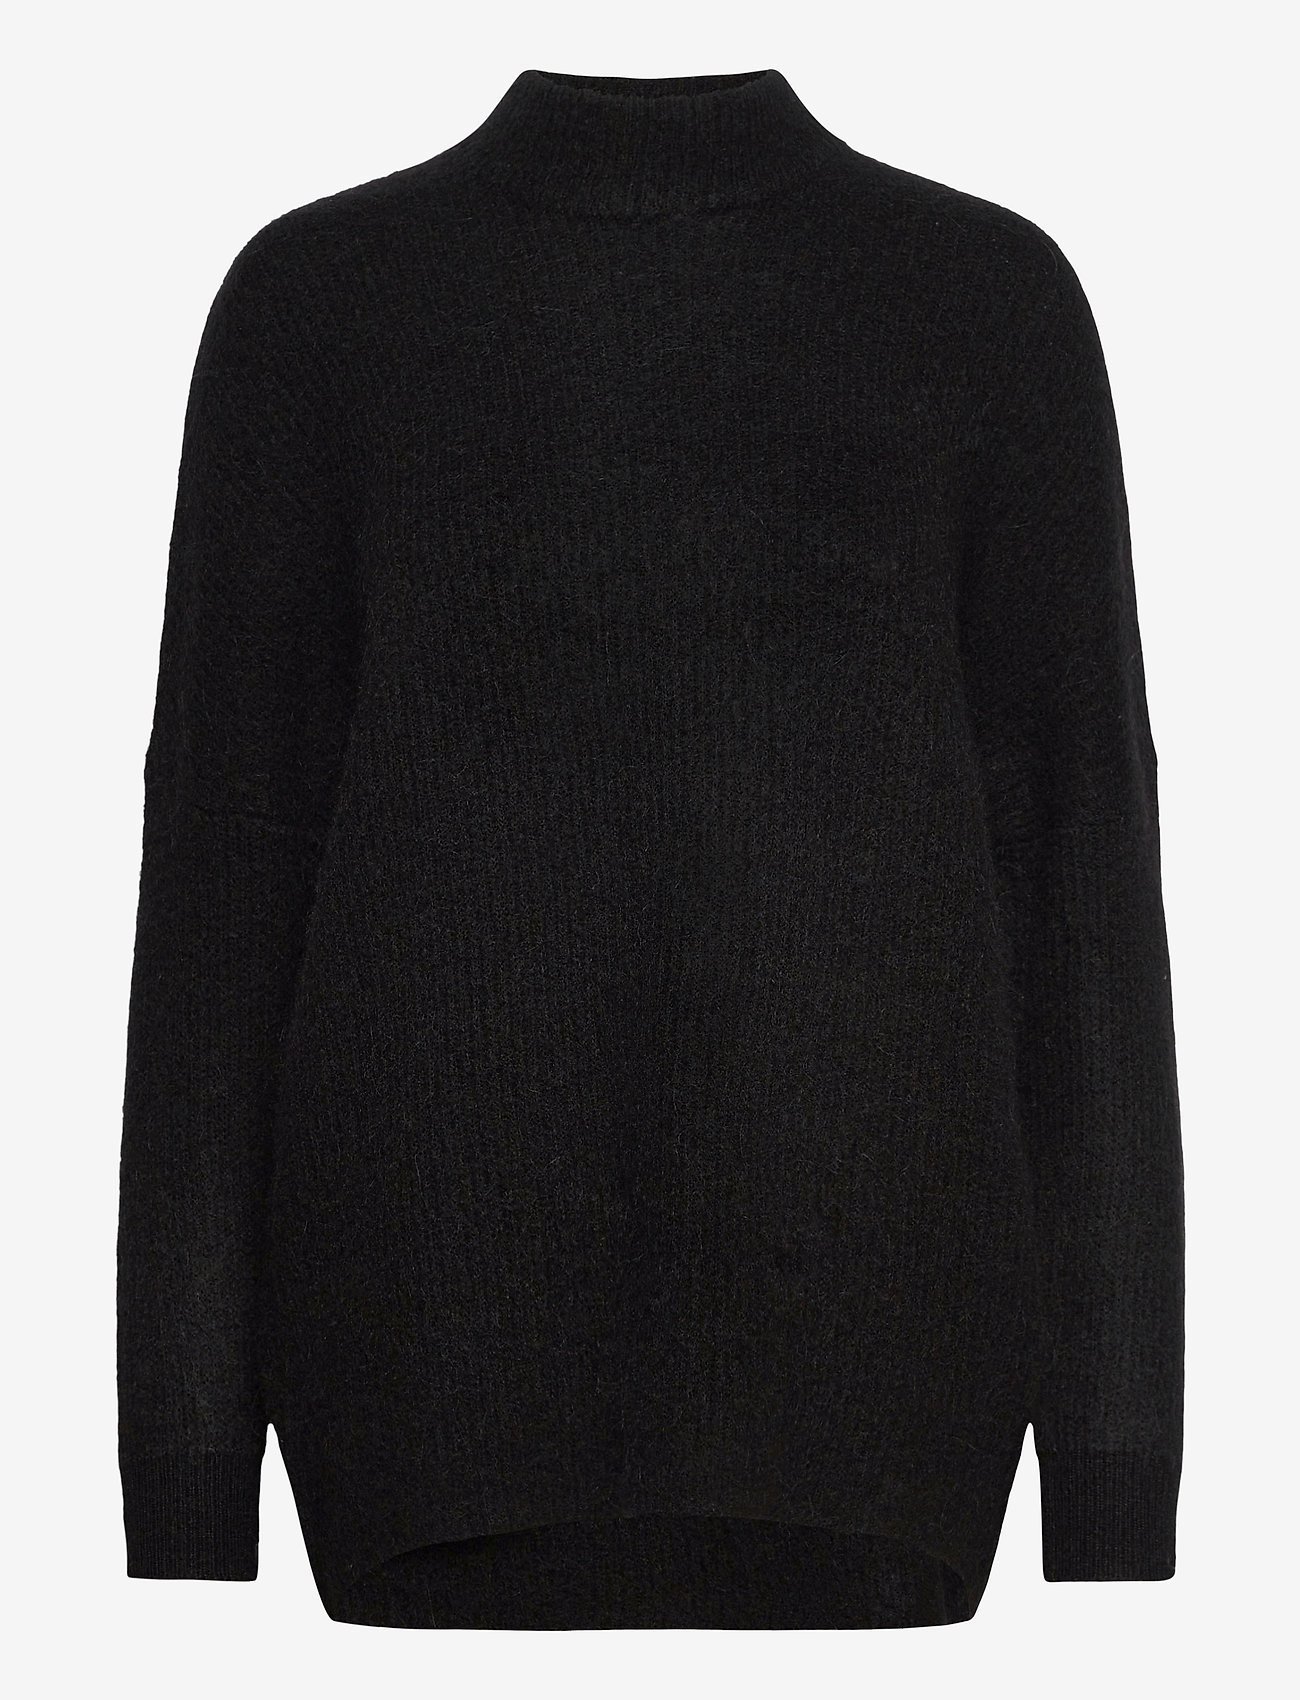 Selected Femme - SLFLULU ENICA LS KNIT O-NECK - truien - black - 0